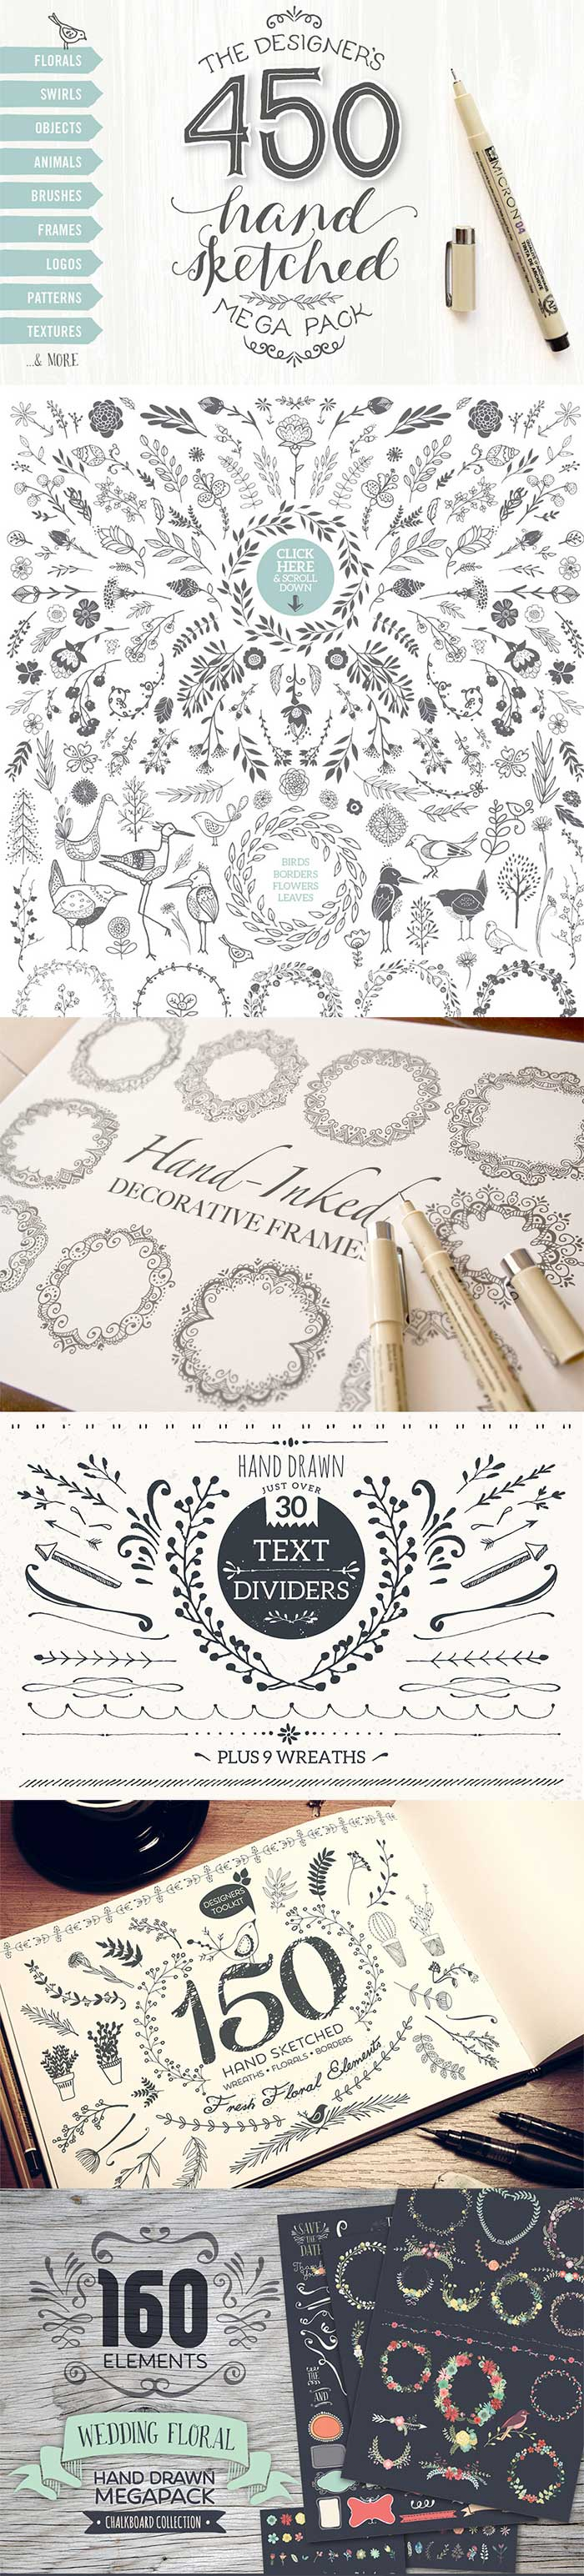 Hand-drawn decorative elements. Get them as part of the Amazing design bundle with 1000's of items for just $29!!